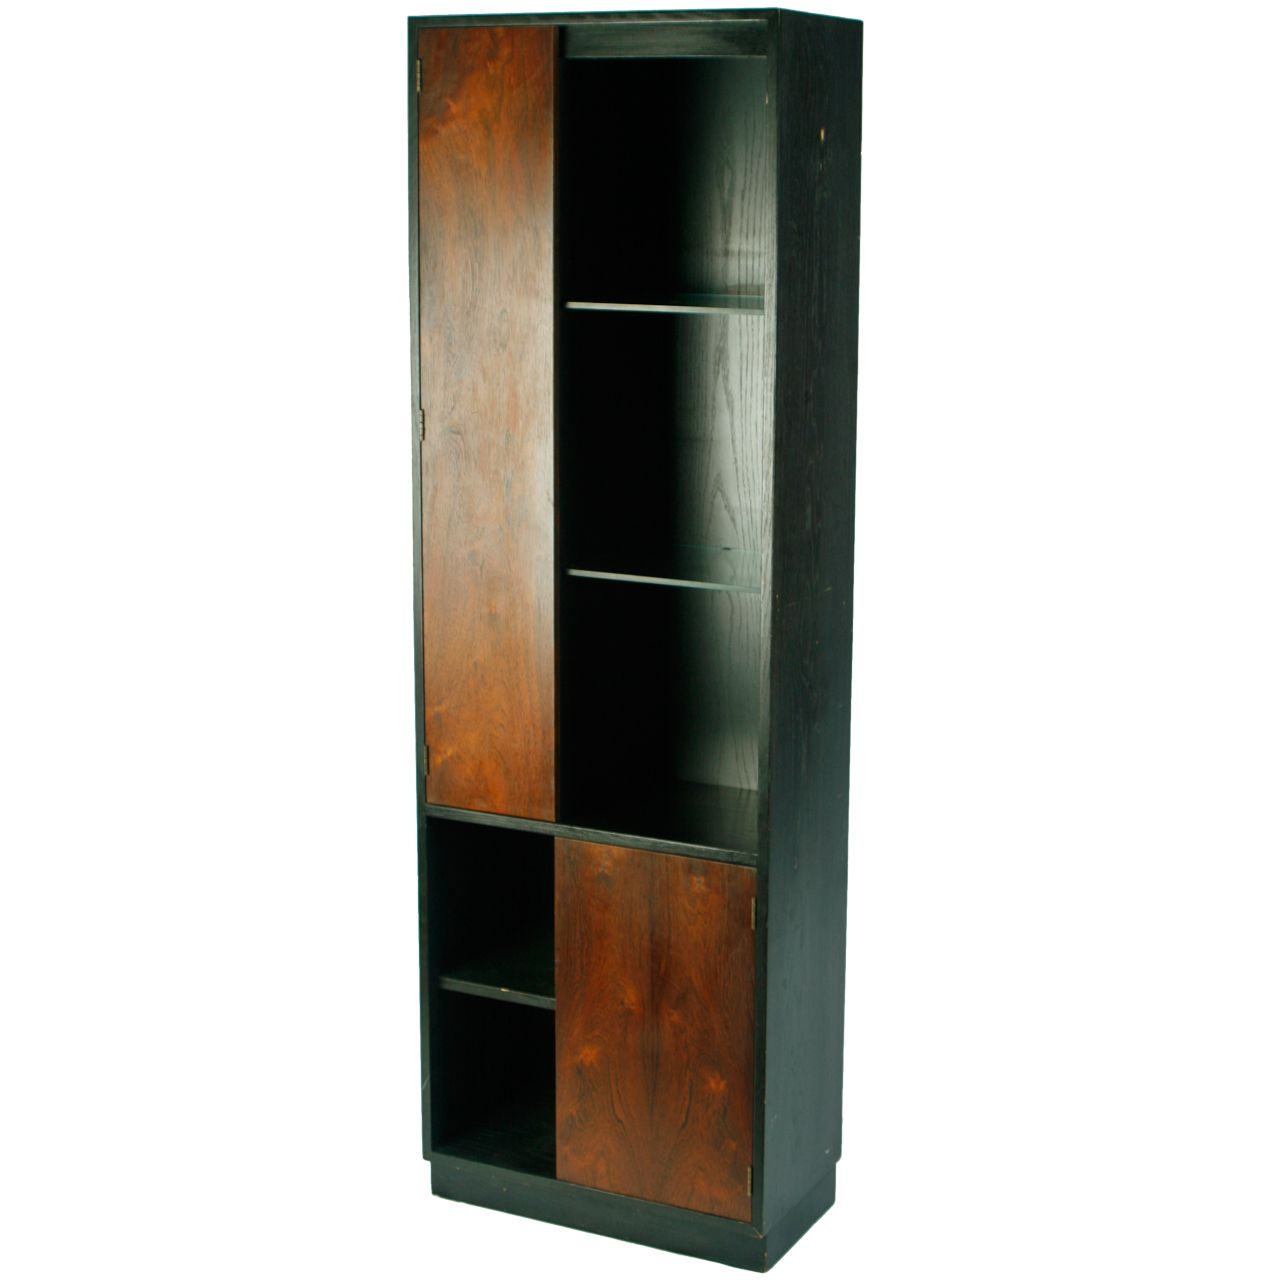 alpha vertical tier standing to column fabulous for image wood a build canada wall architecture bookcase unit bookcases modern white rack bookshelf mount full shelves black awssborg book ikea spine hack tower how lack shelf diy shelving walmart